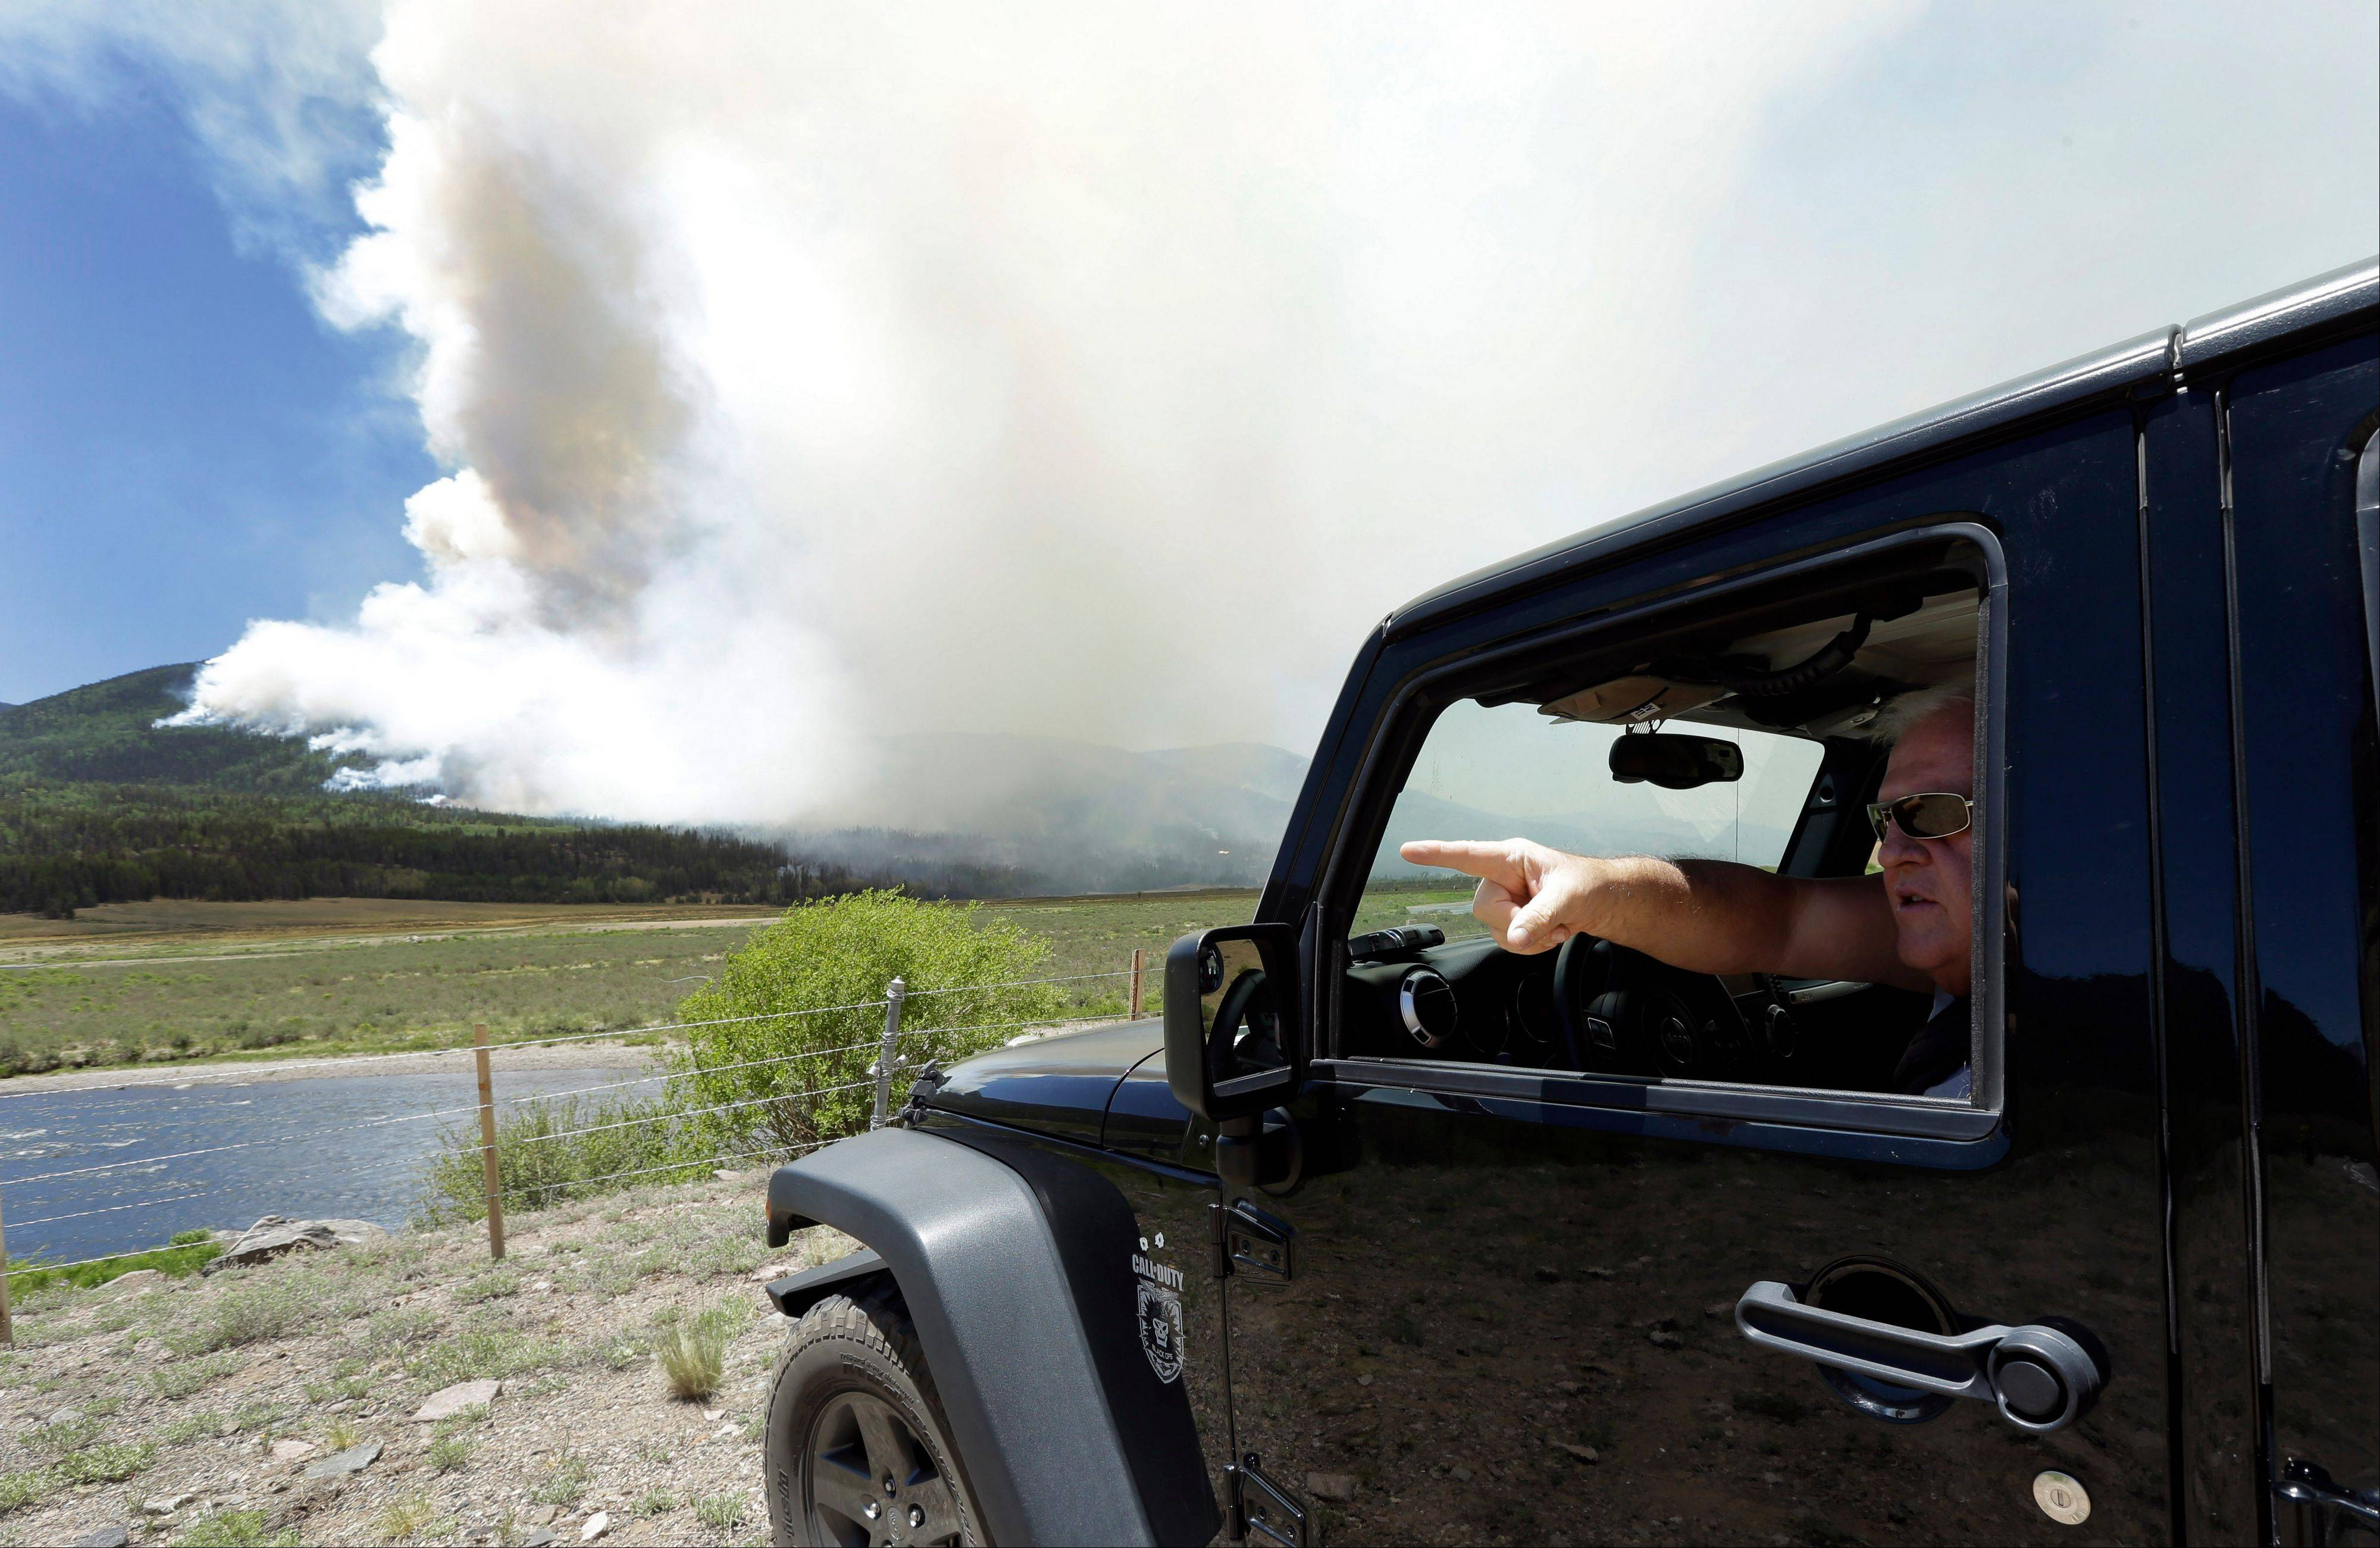 Garry Van Der Starre points out as a wildfire burns on a hillside along highway 149 west of Creede, Colo., Monday, June 24, 2013. Crews defending resort towns, homes and cabins against a massive and erratic wildfire in Colorado�s southwest mountains were looking Tuesday for a slight break after nearly a week of unrelenting winds.